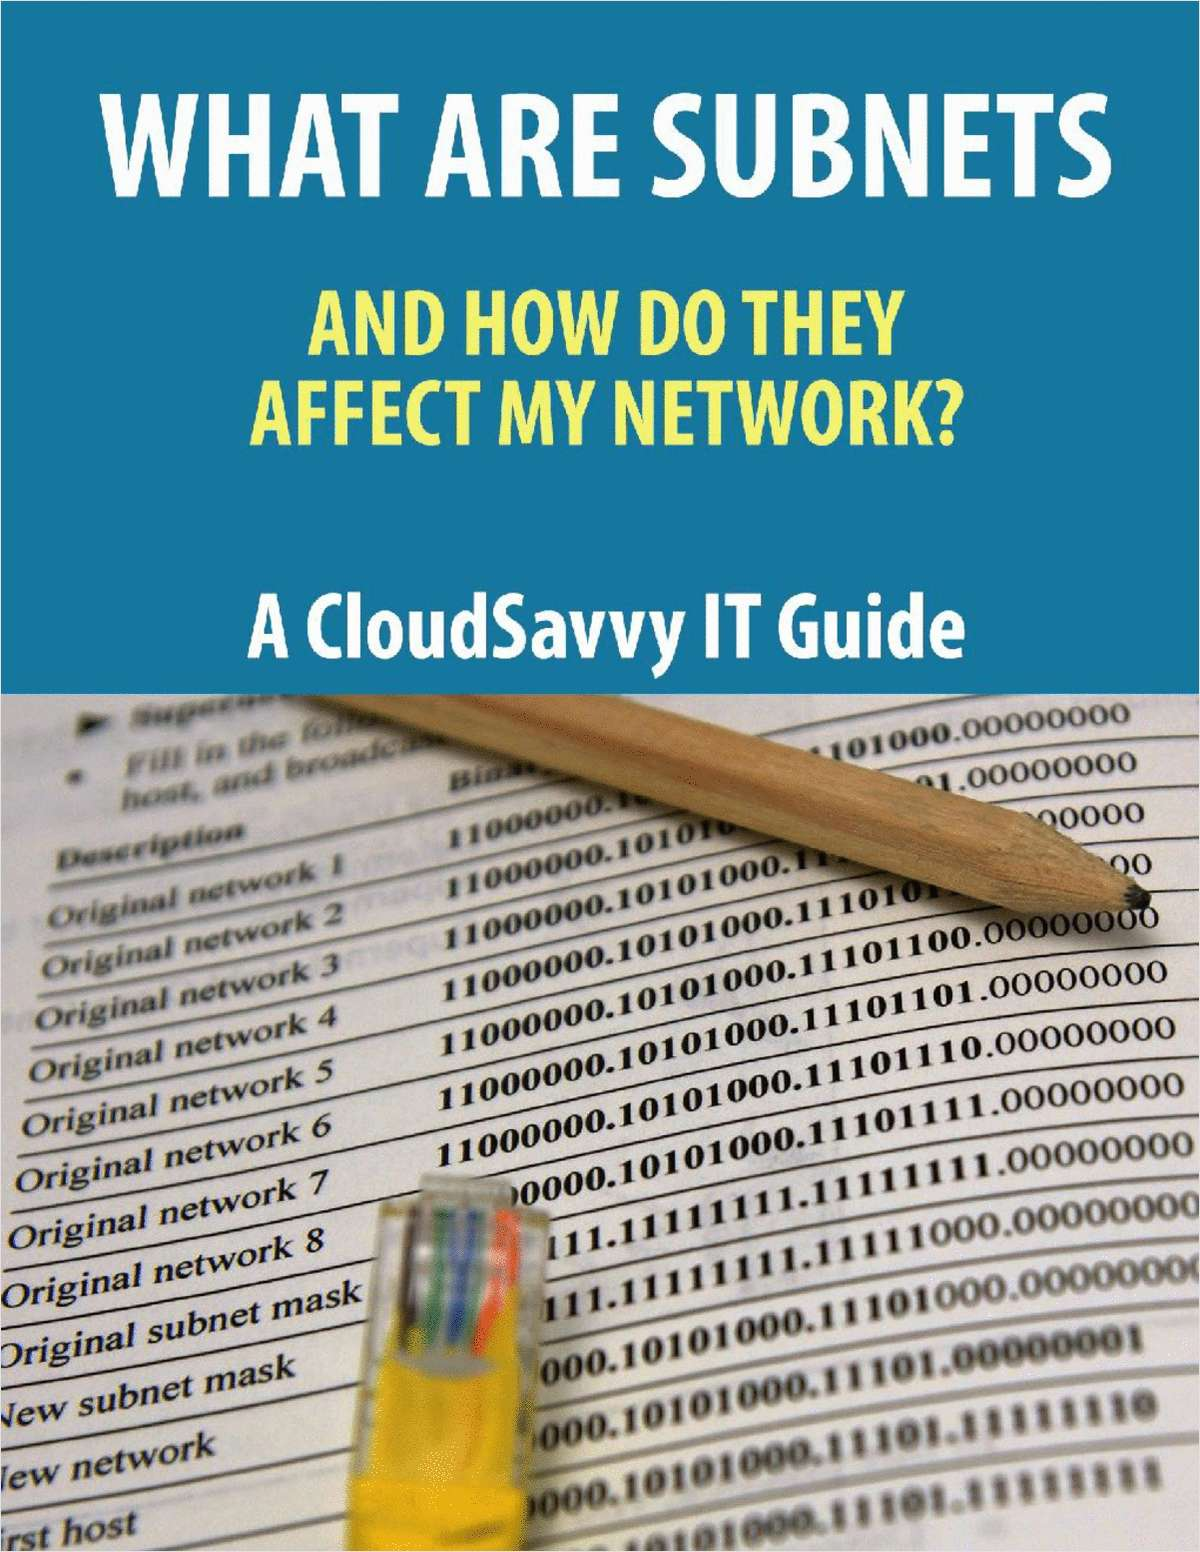 What Are Subnets and How Do They Affect My Network?